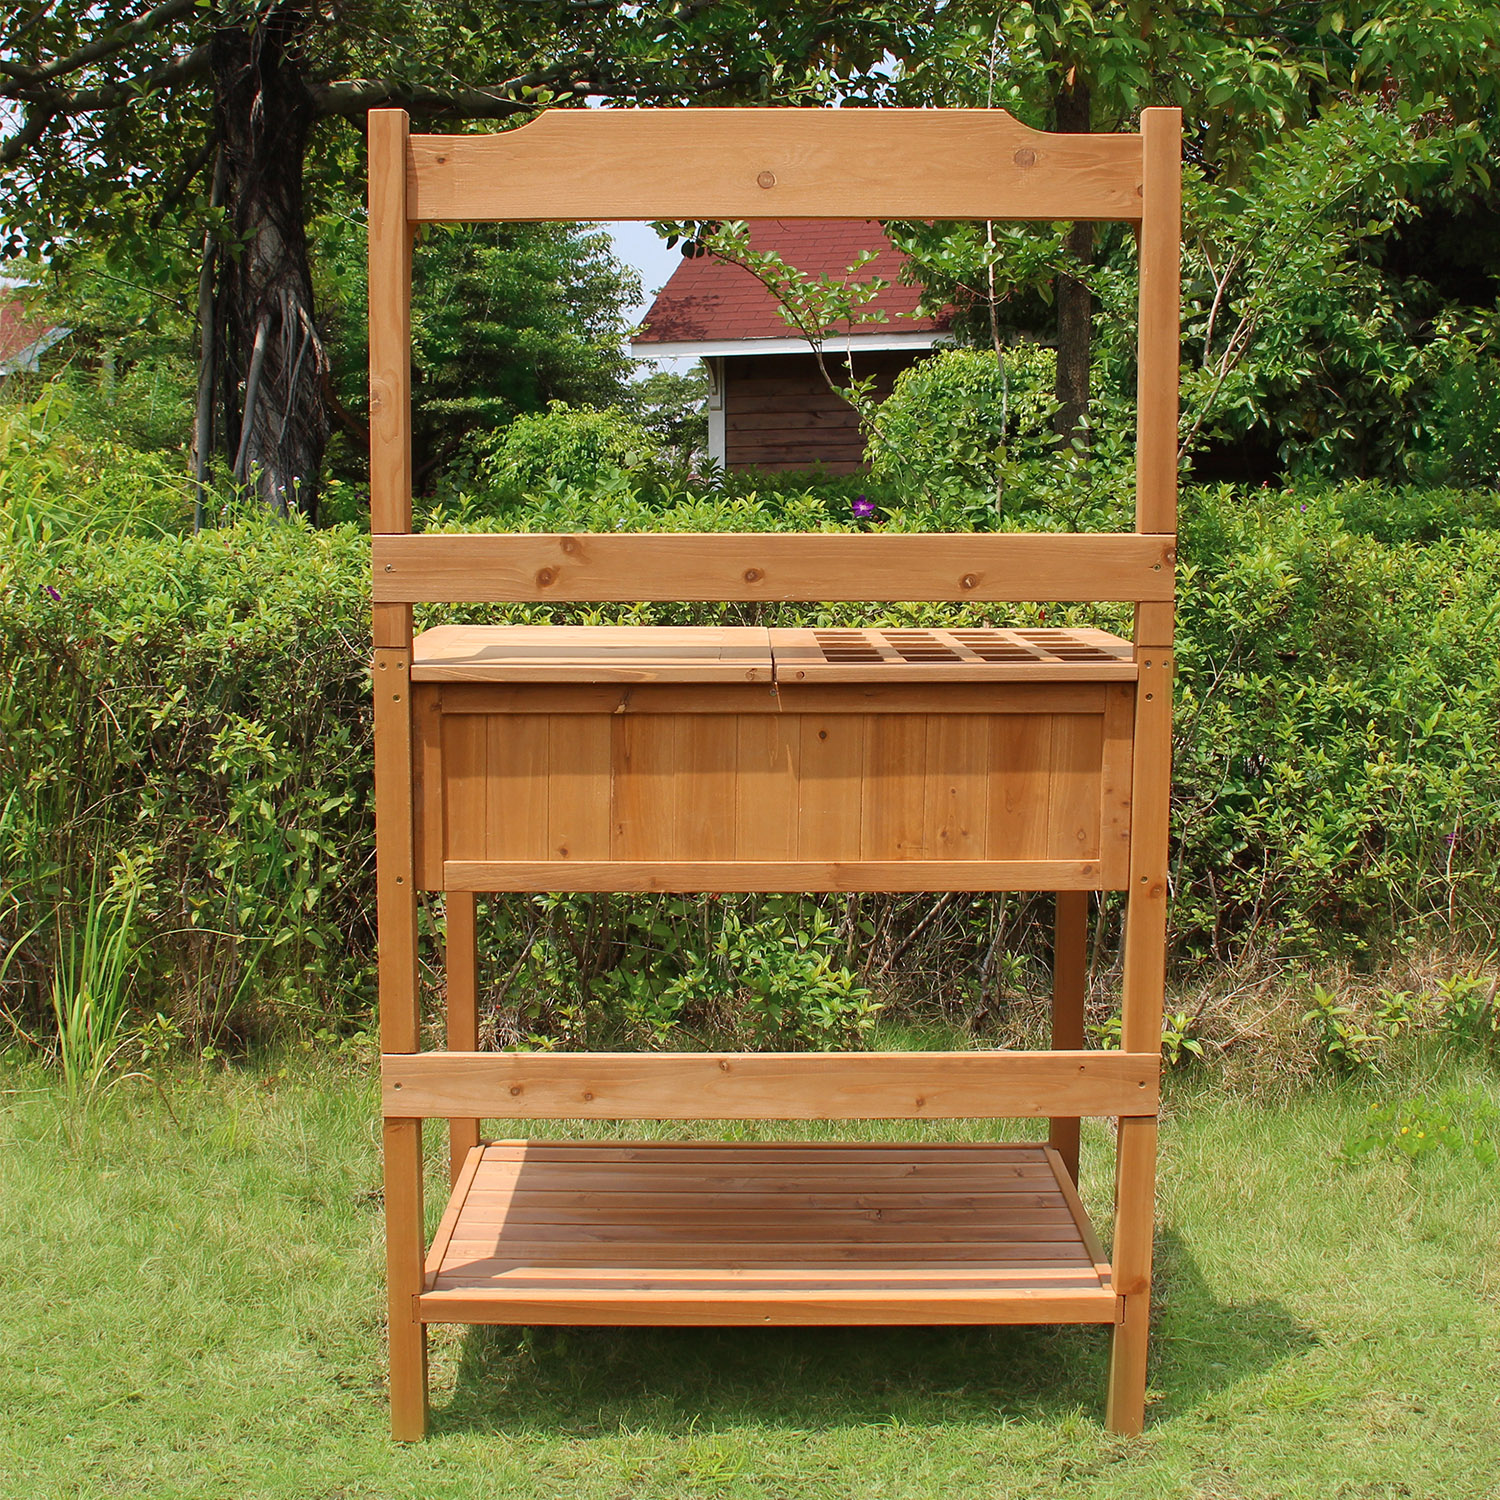 merry garden adirondack chair desk casters products wood potting bench with recessed storage